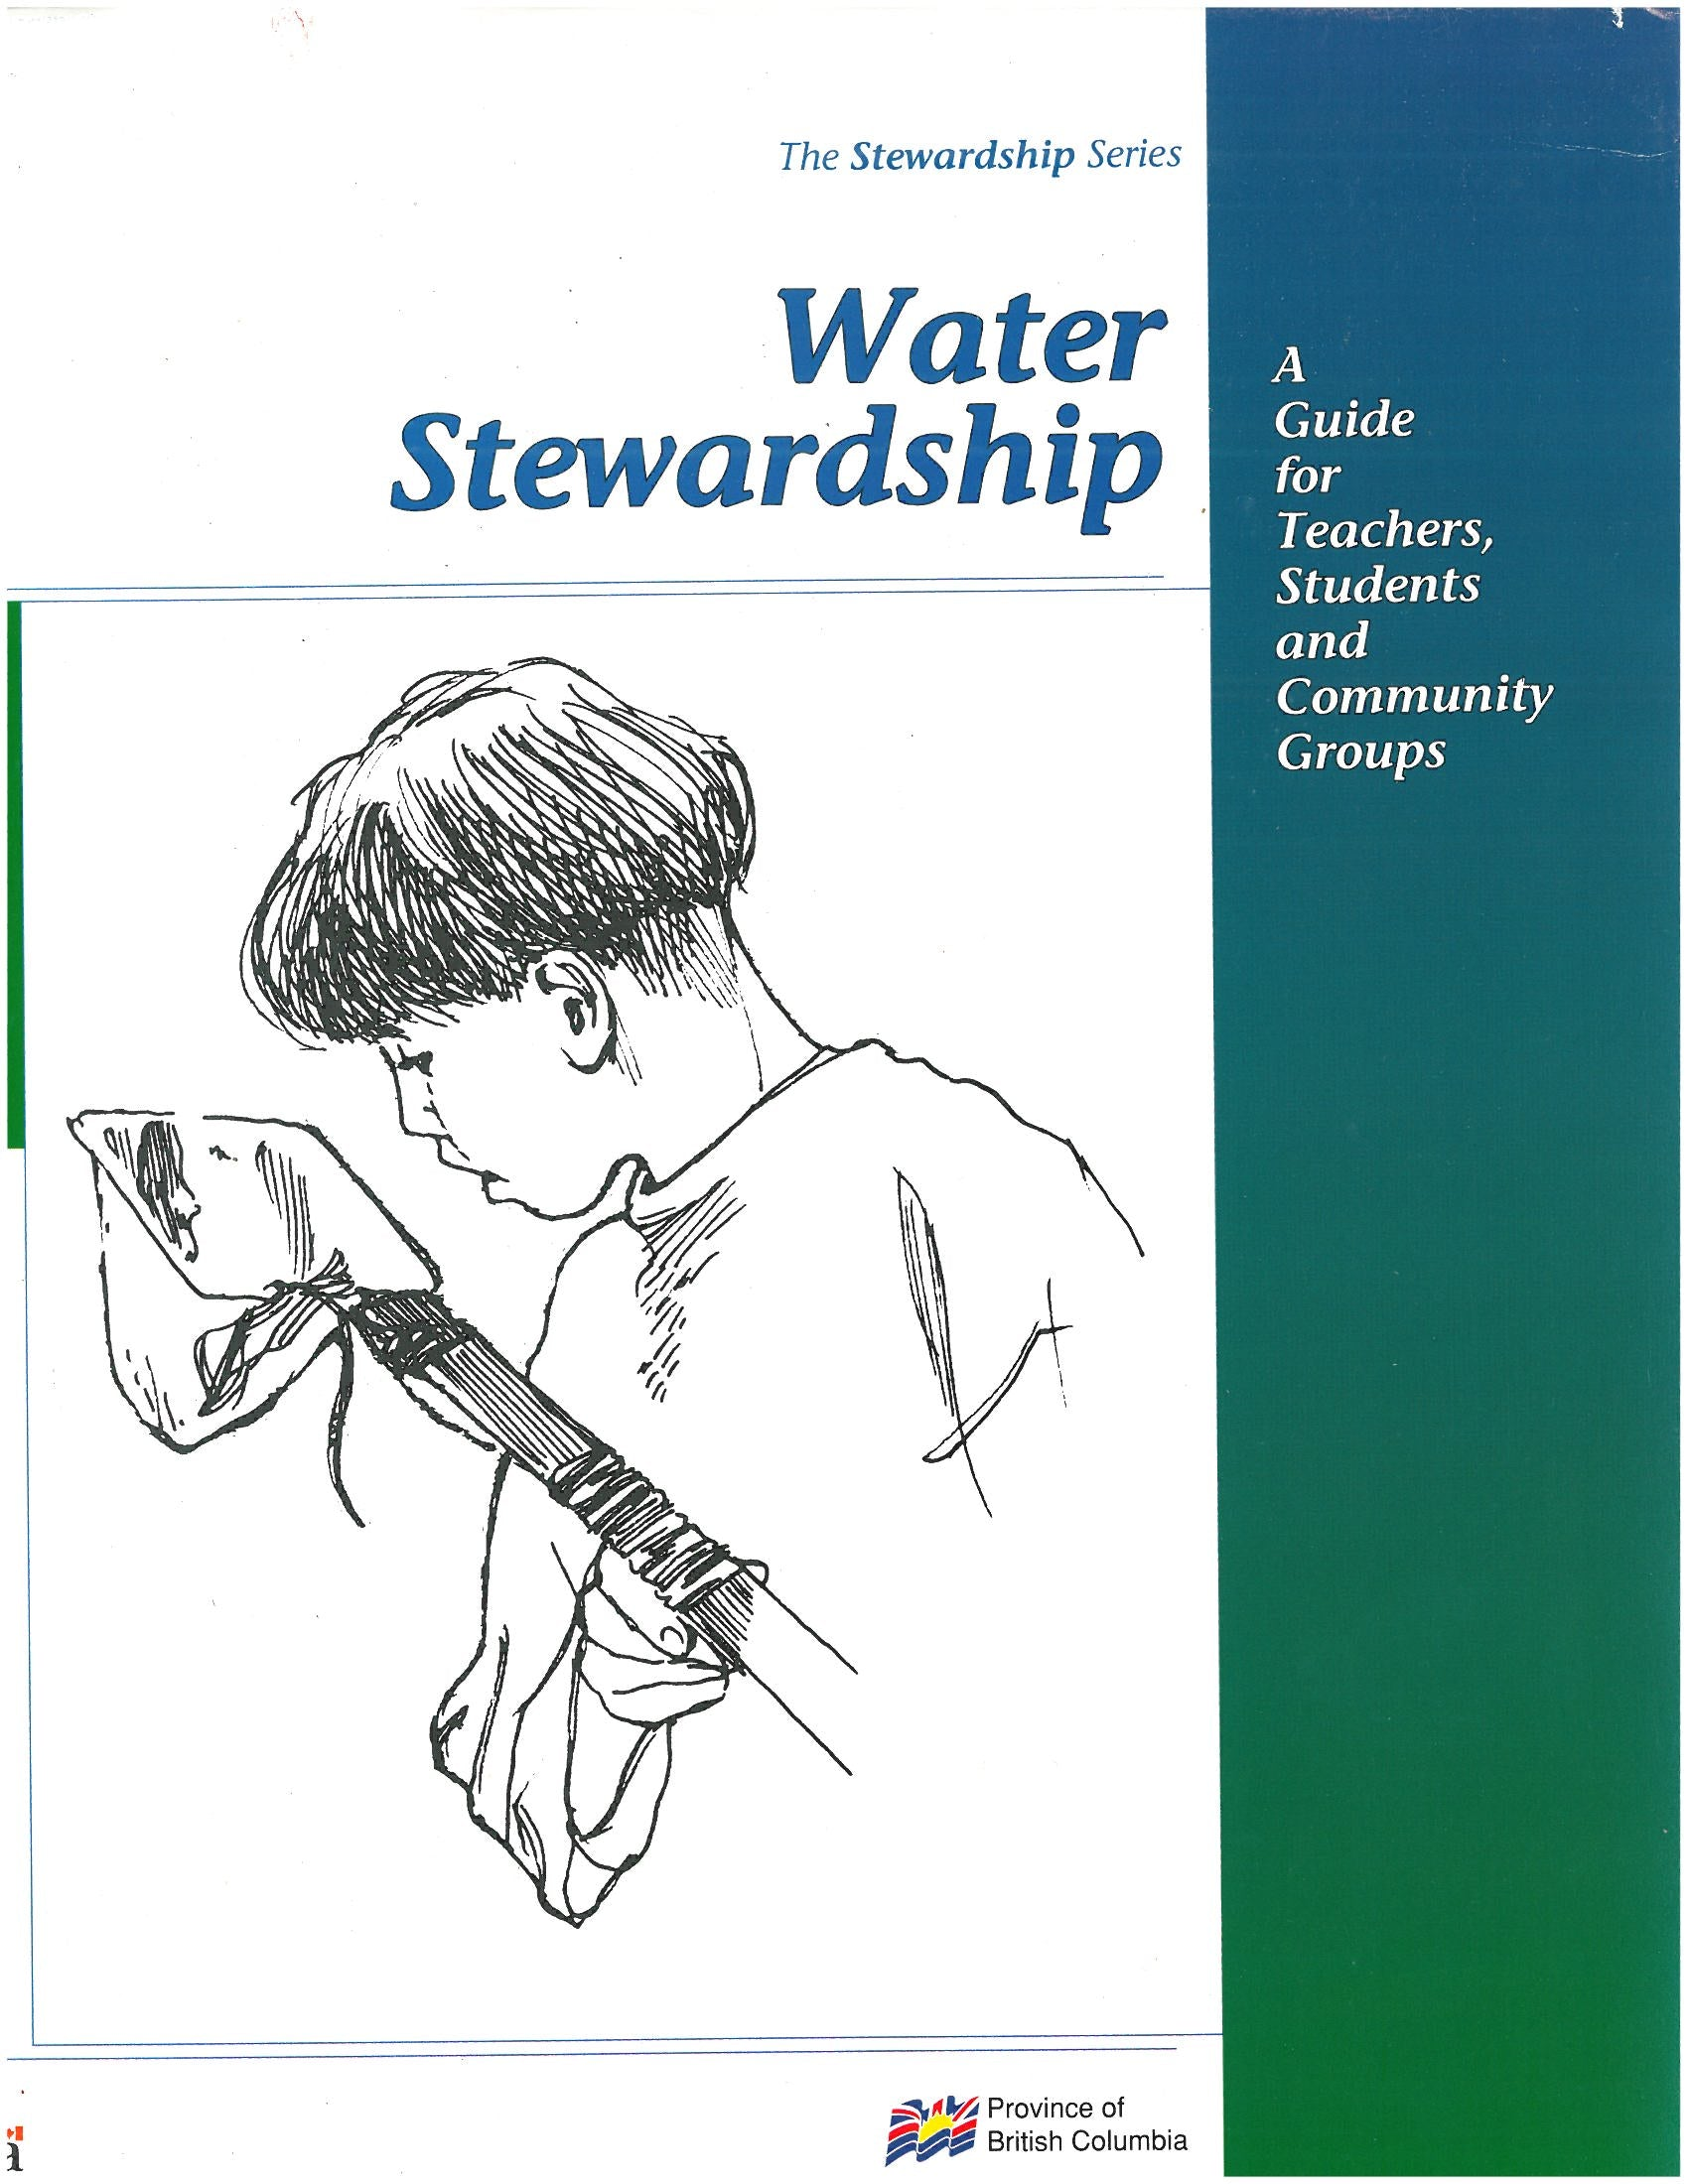 Water Stewardship: A Guide For Teachers, Students and Community Groups